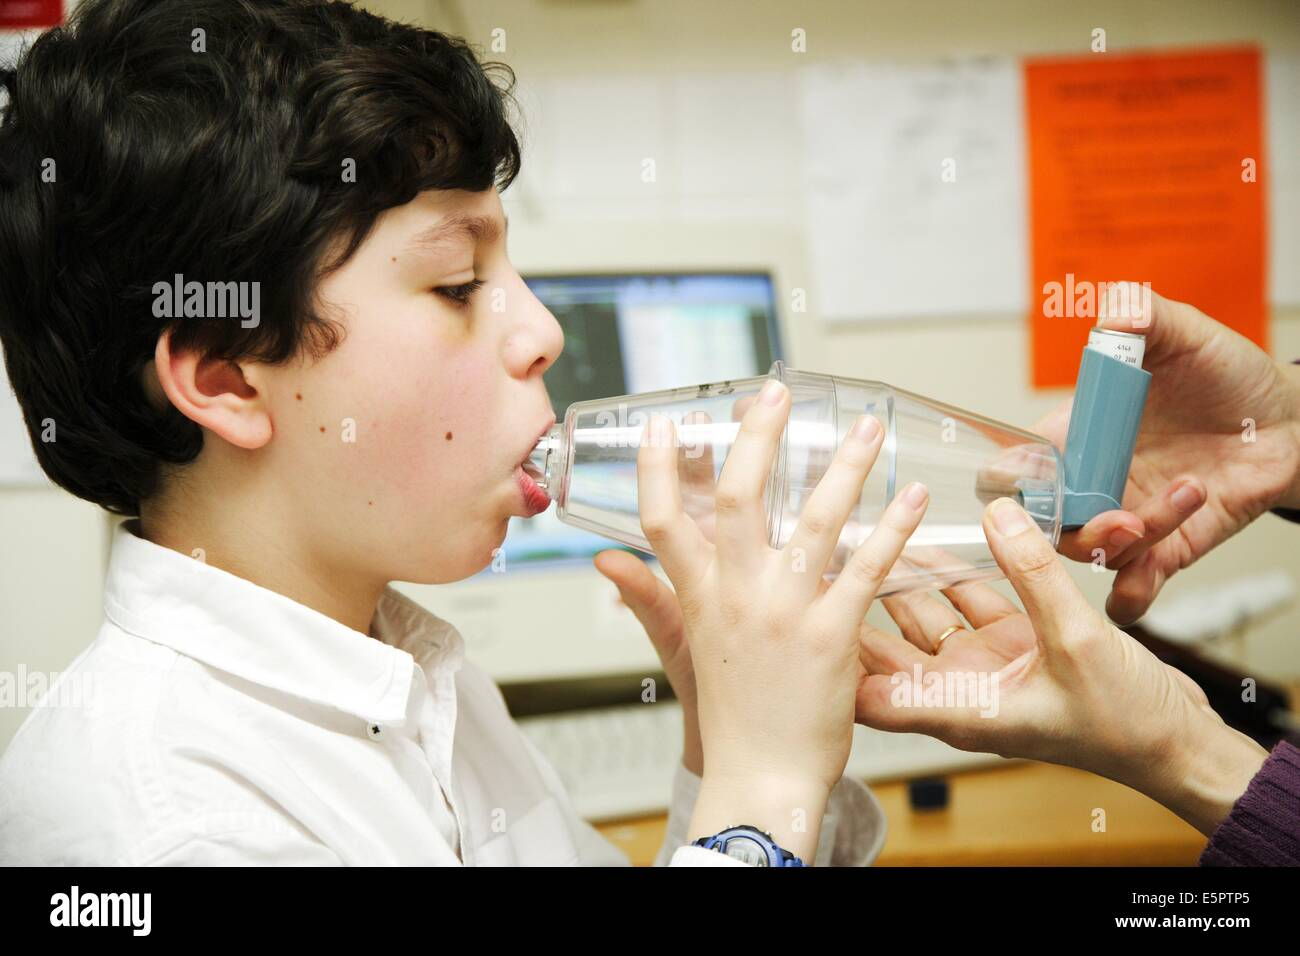 Asthmatic child inhaling bronchodilator aerosol with an inhalation chamber, Asthma center at the hospital Armand - Stock Image